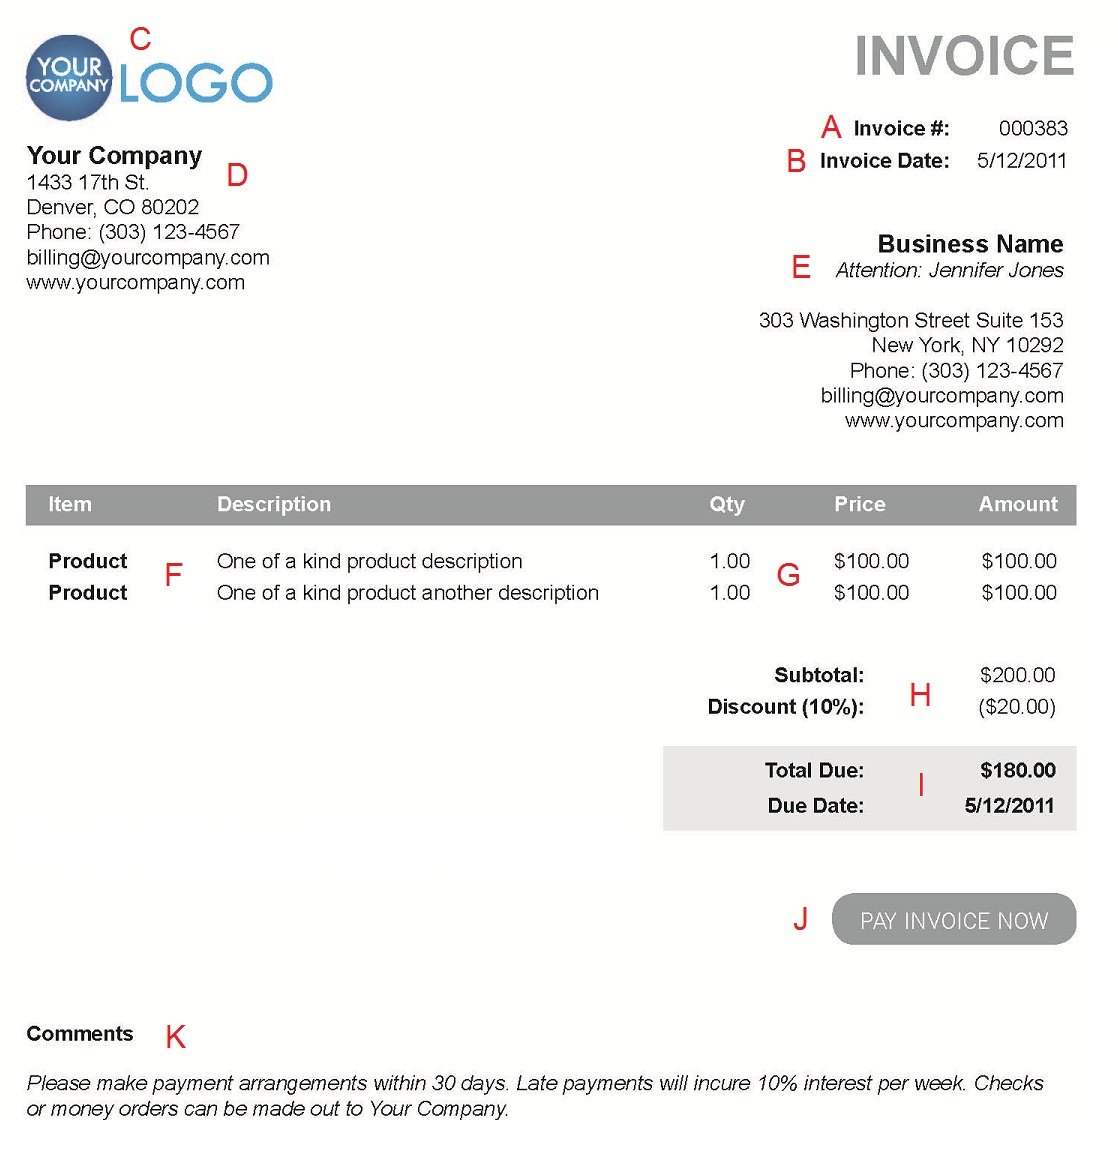 Hucareus  Surprising The  Different Sections Of An Electronic Payment Invoice With Exquisite A  With Astounding Online Invoice Template Also How To Do An Invoice In Addition Free Printable Invoice Templates And Open Office Invoice Template As Well As Free Invoice Template Excel Additionally Ms Word Invoice Template From Paysimplecom With Hucareus  Exquisite The  Different Sections Of An Electronic Payment Invoice With Astounding A  And Surprising Online Invoice Template Also How To Do An Invoice In Addition Free Printable Invoice Templates From Paysimplecom